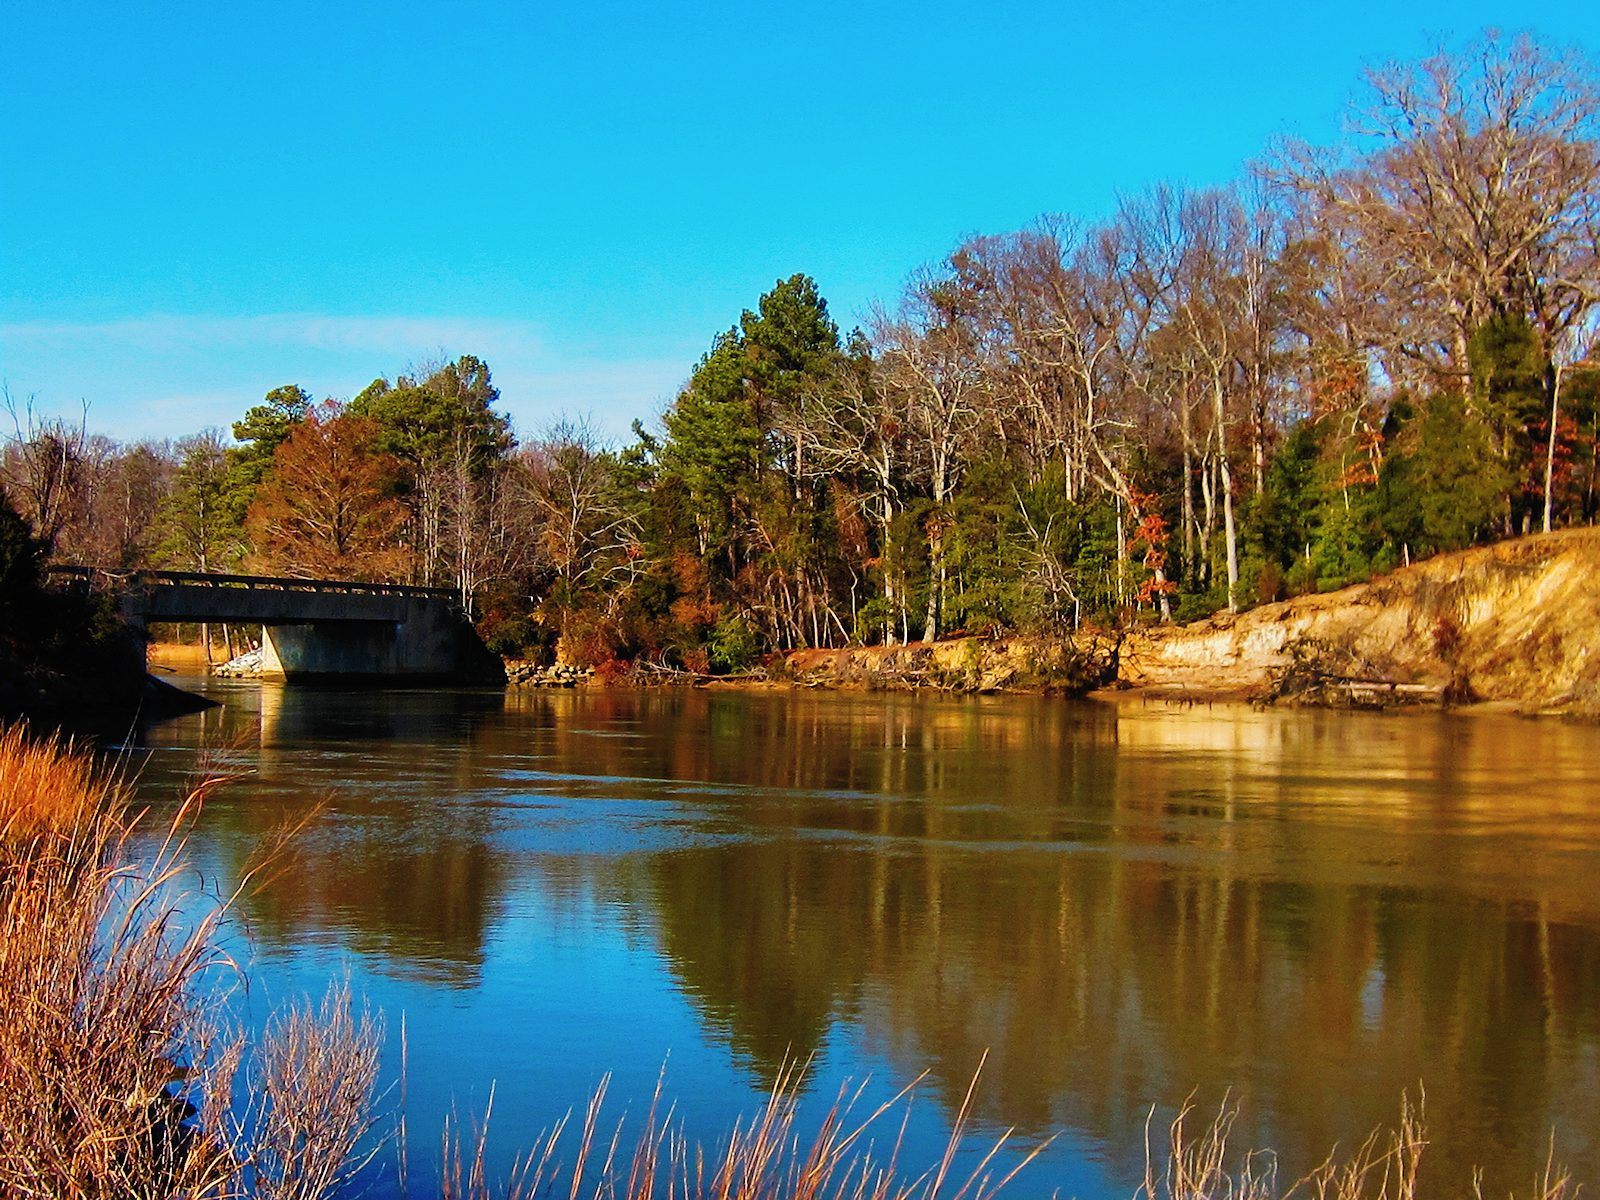 Photograph River Inlet by SusanAnn Avery on 500px